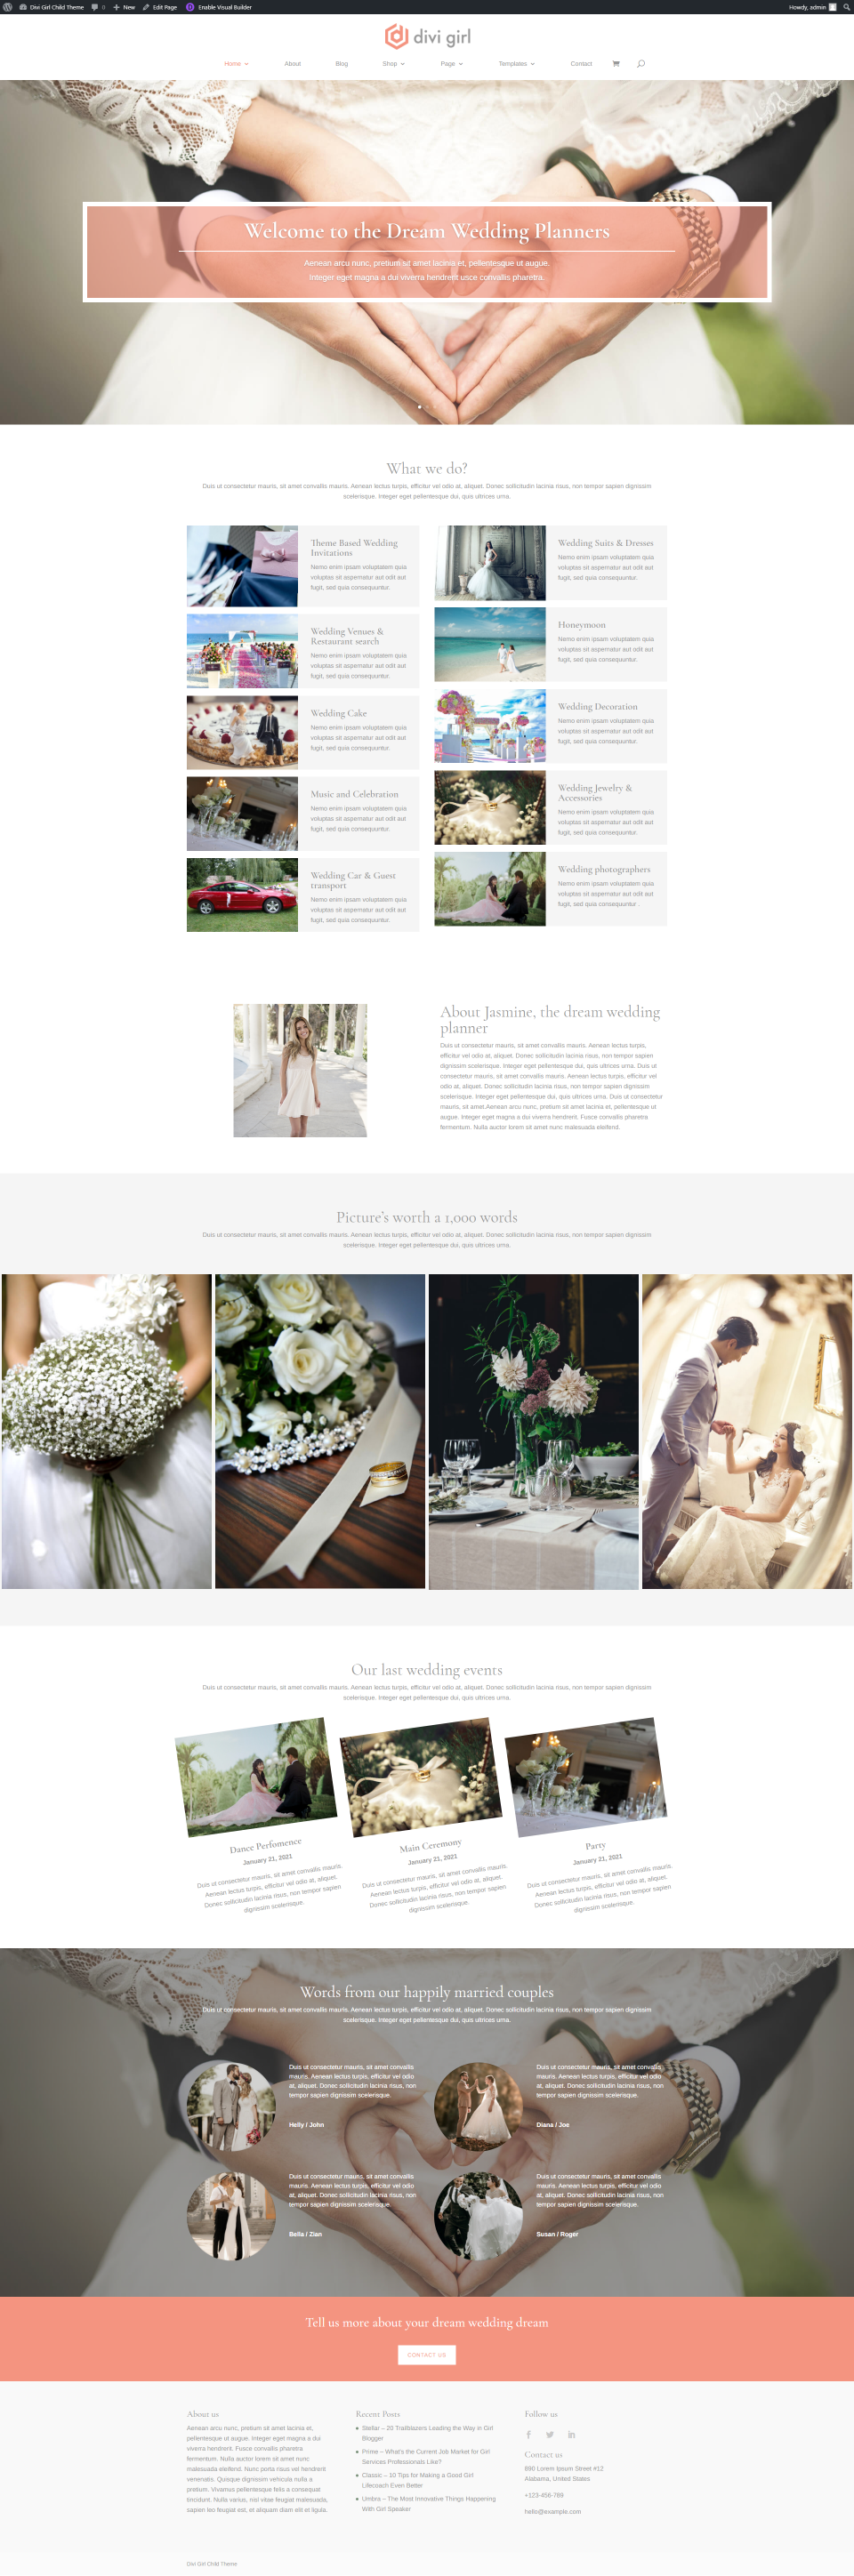 Wedding Planner Homepage